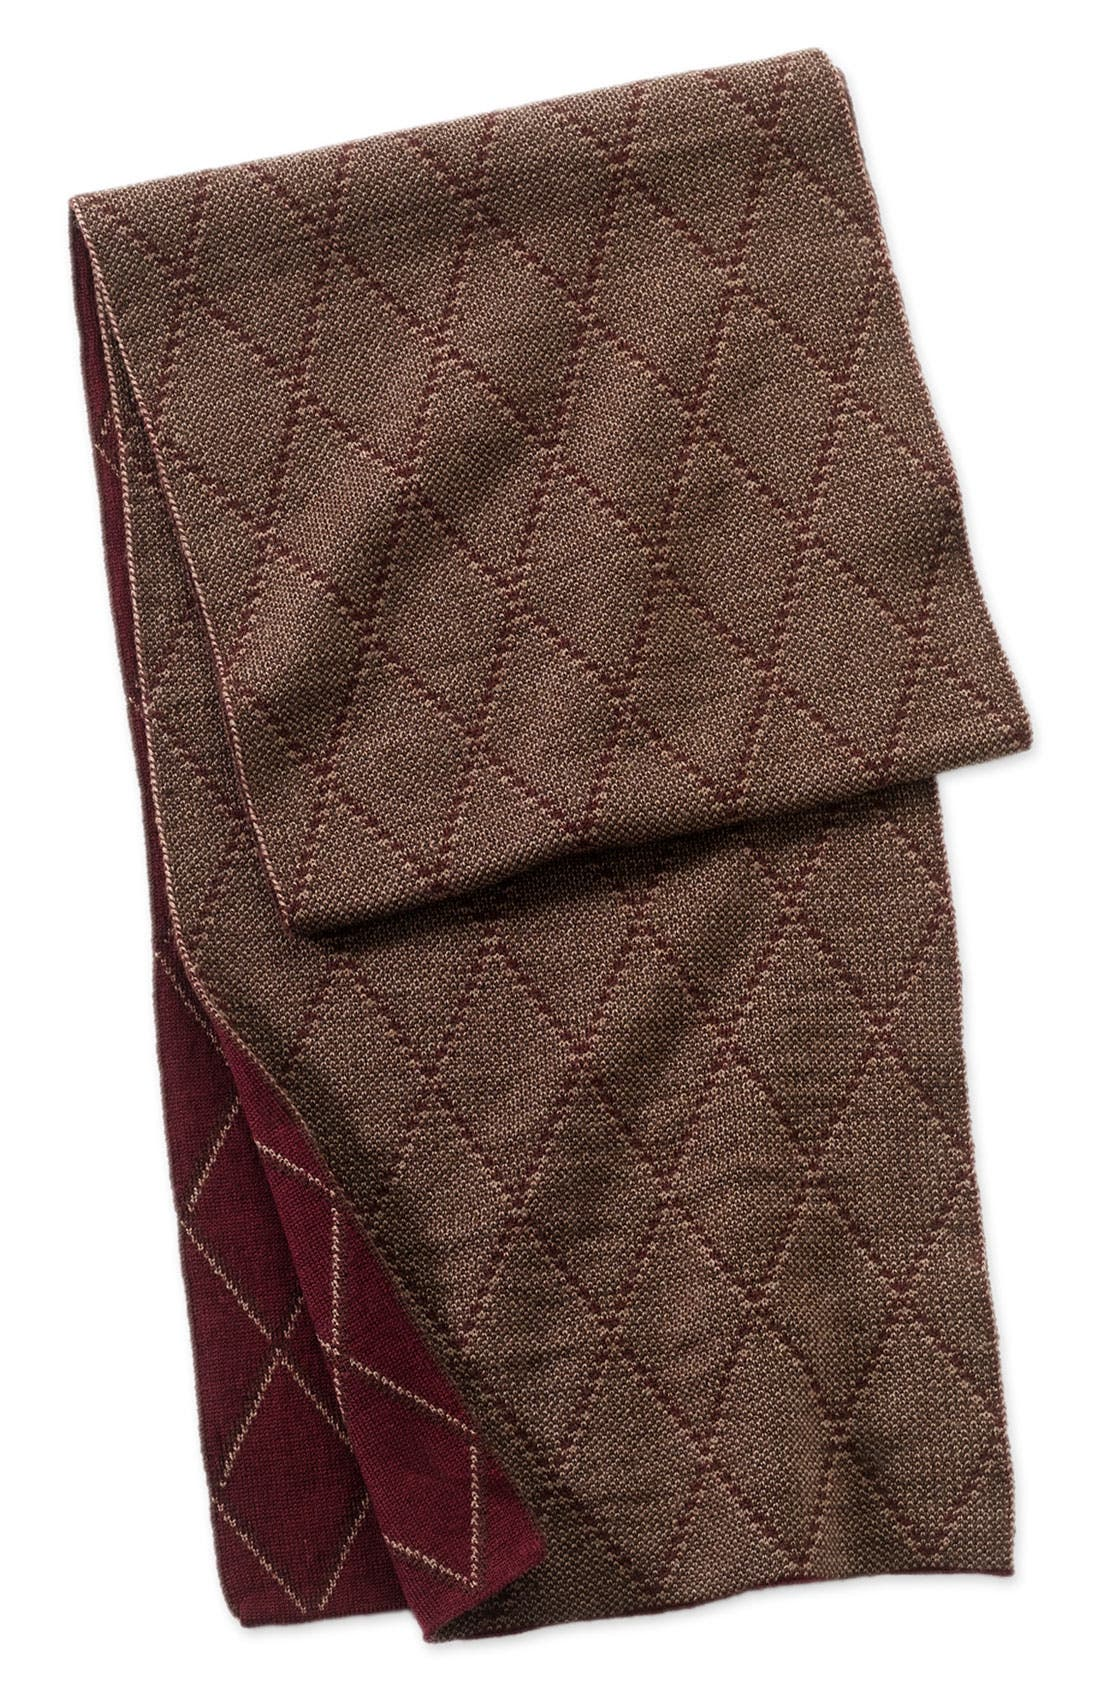 Main Image - Nordstrom Patterned Wool Scarf